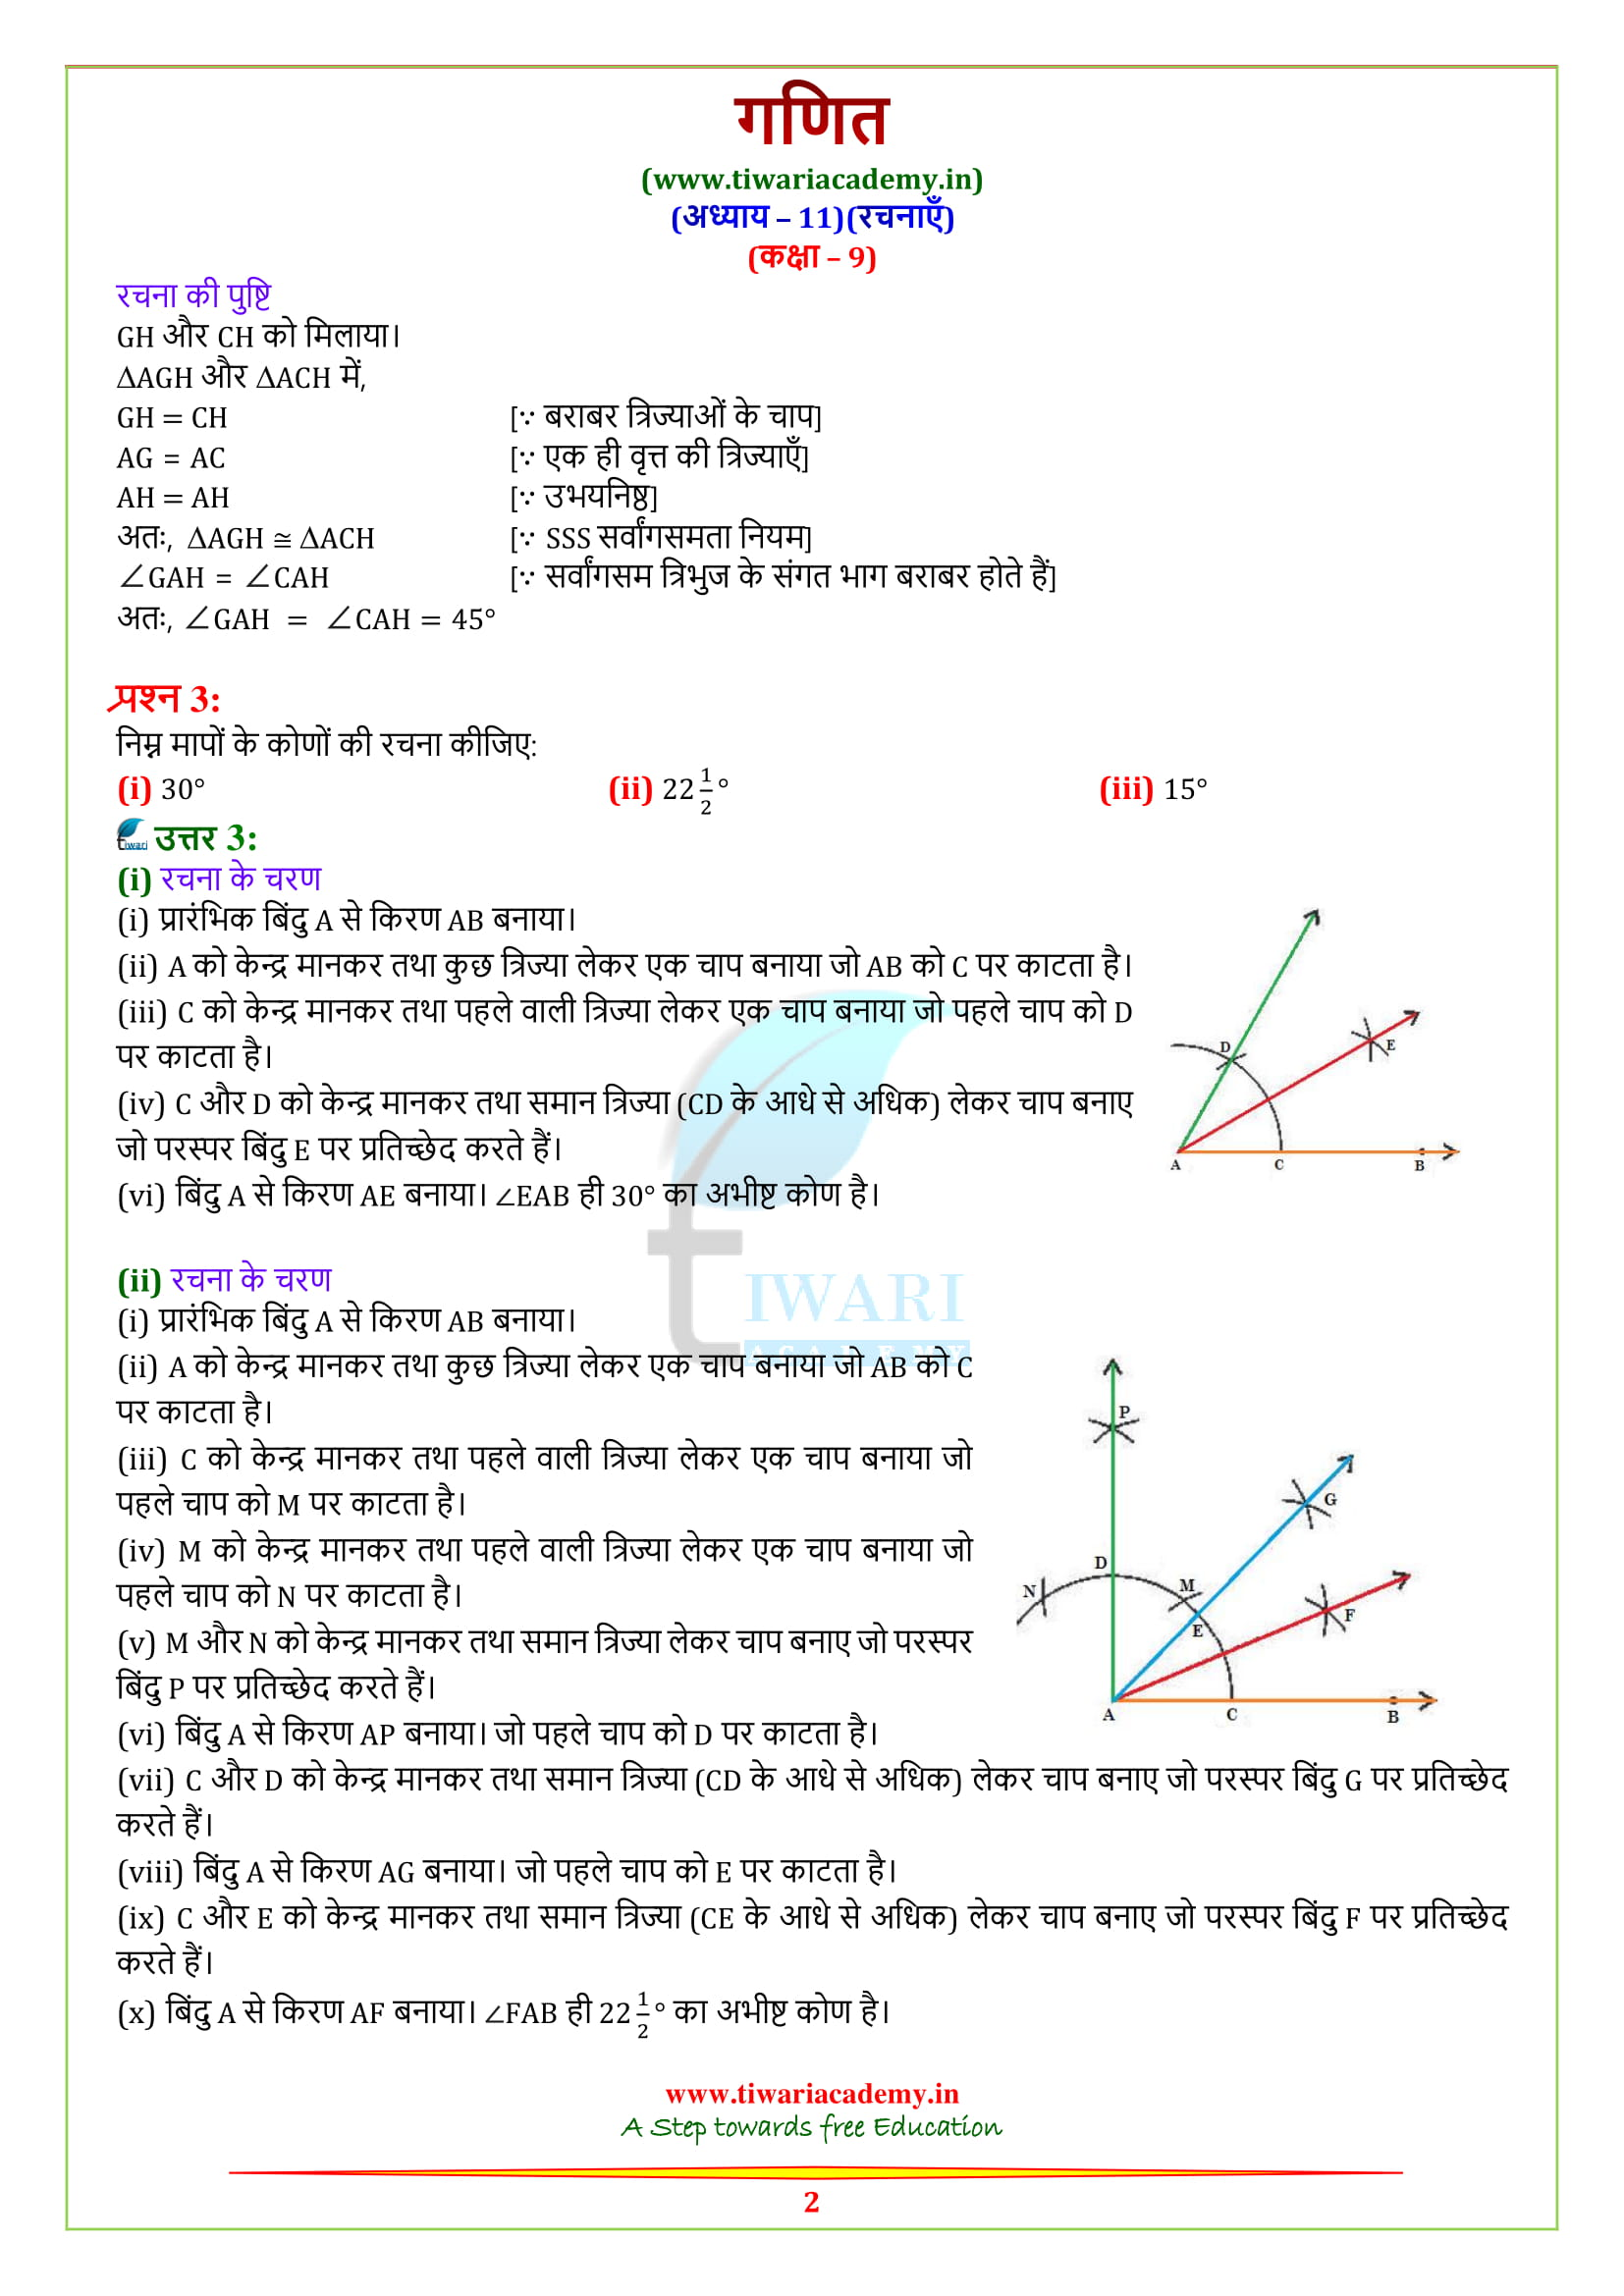 NCERT Solutions for class 9 Maths Exercise 11.1 all question answers updated